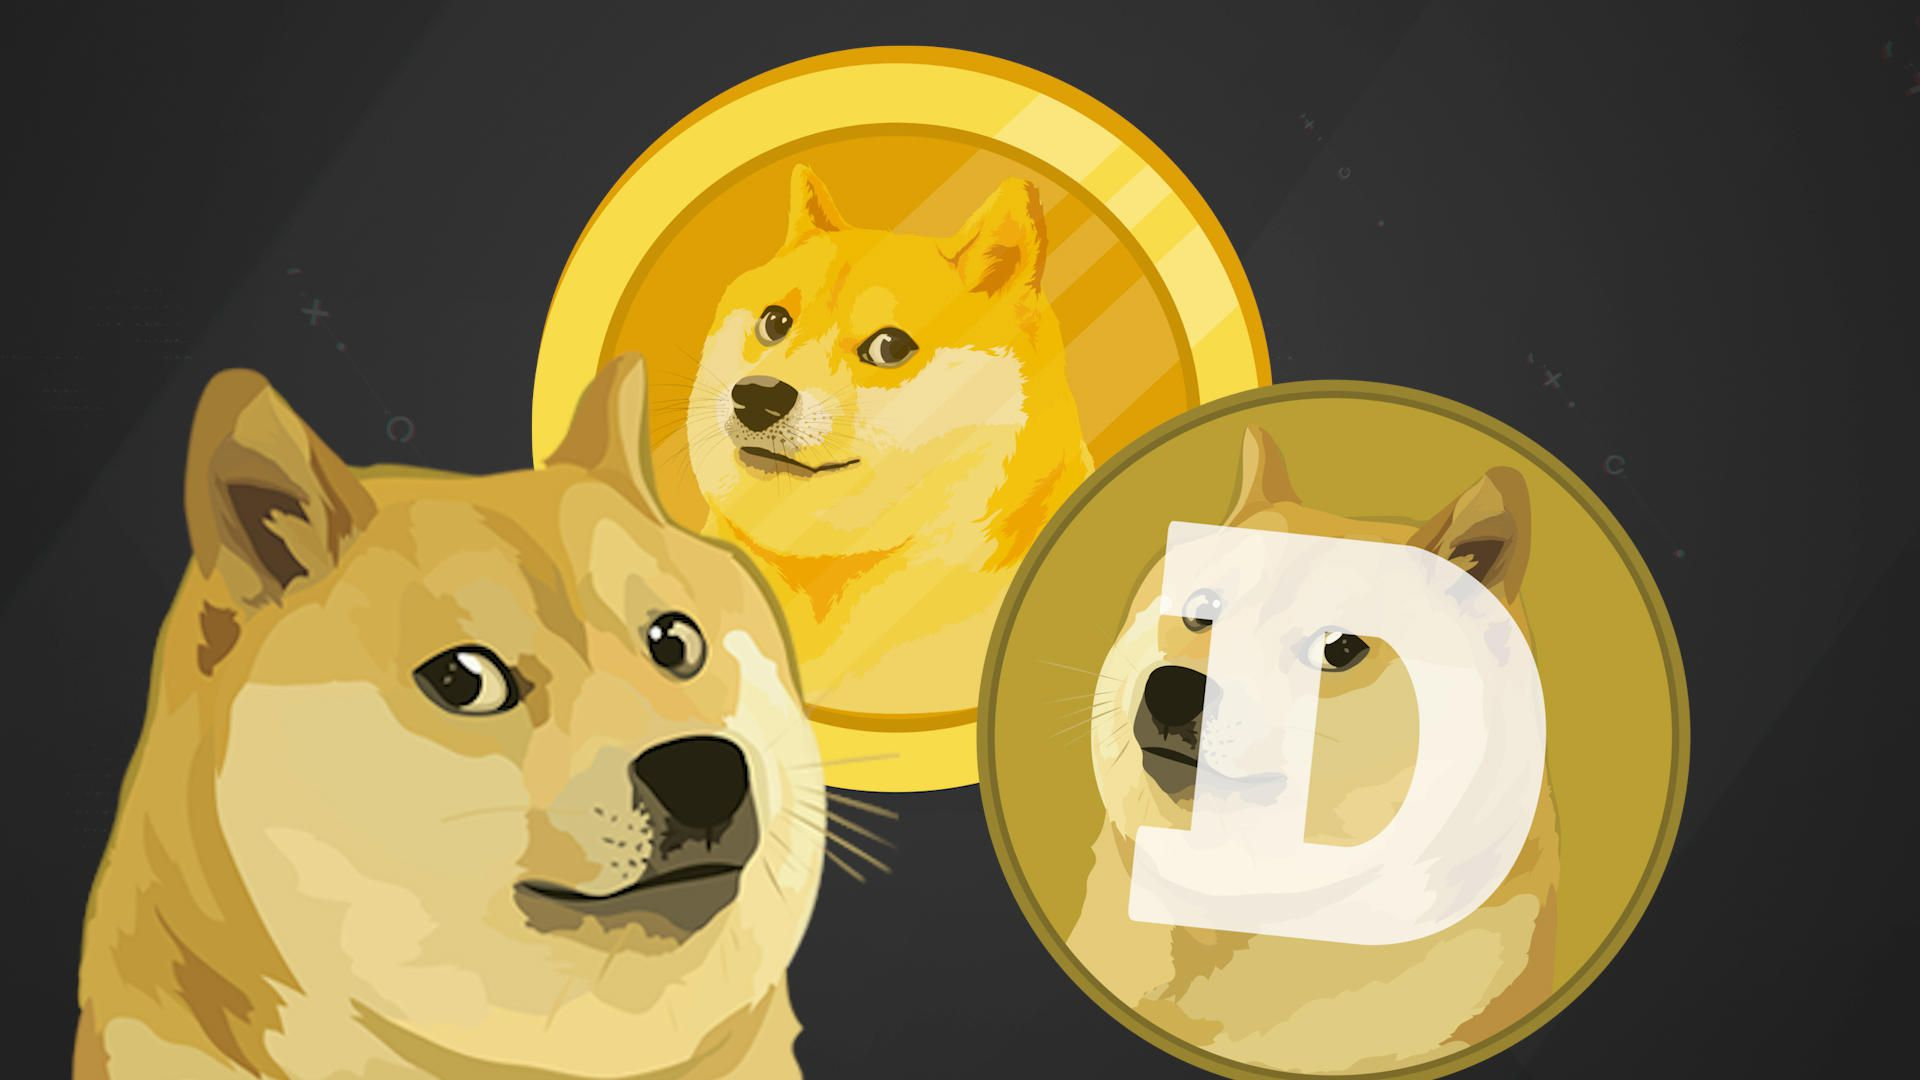 Buy 1000 Dogecoin (DOGE) Now!!!